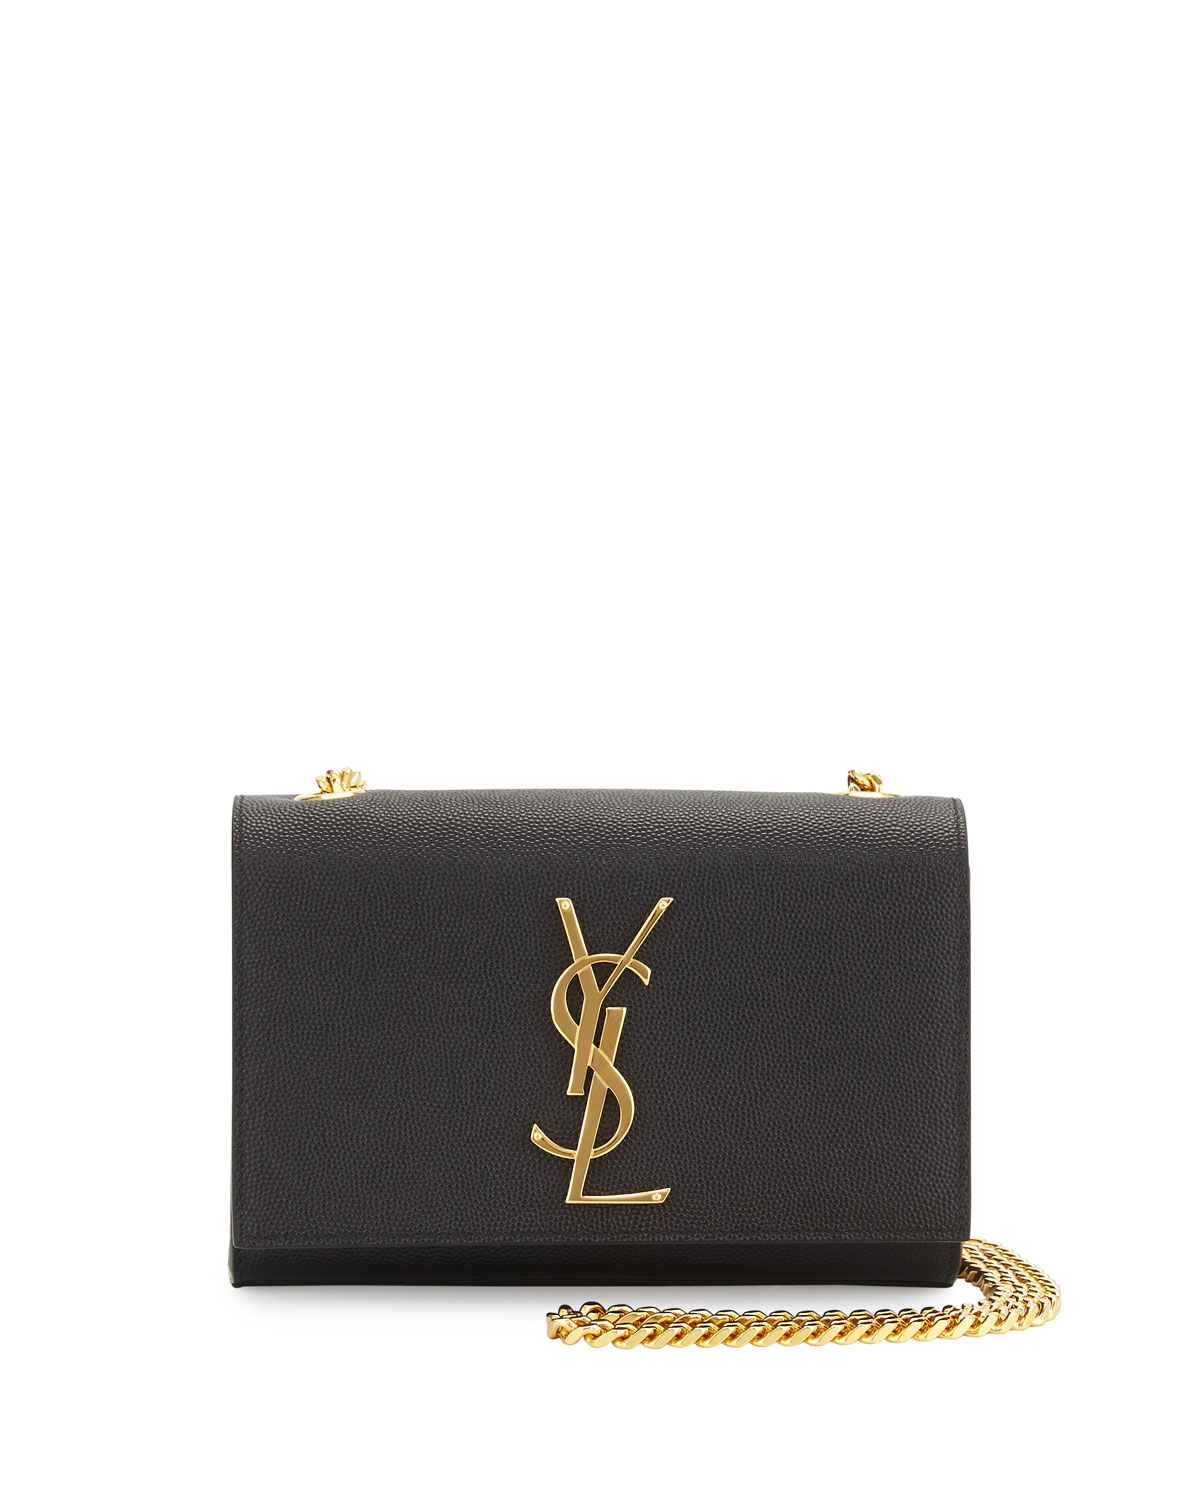 9f73a2fc3a Saint Laurent Kate Monogram YSL Leather Crossbody Bag